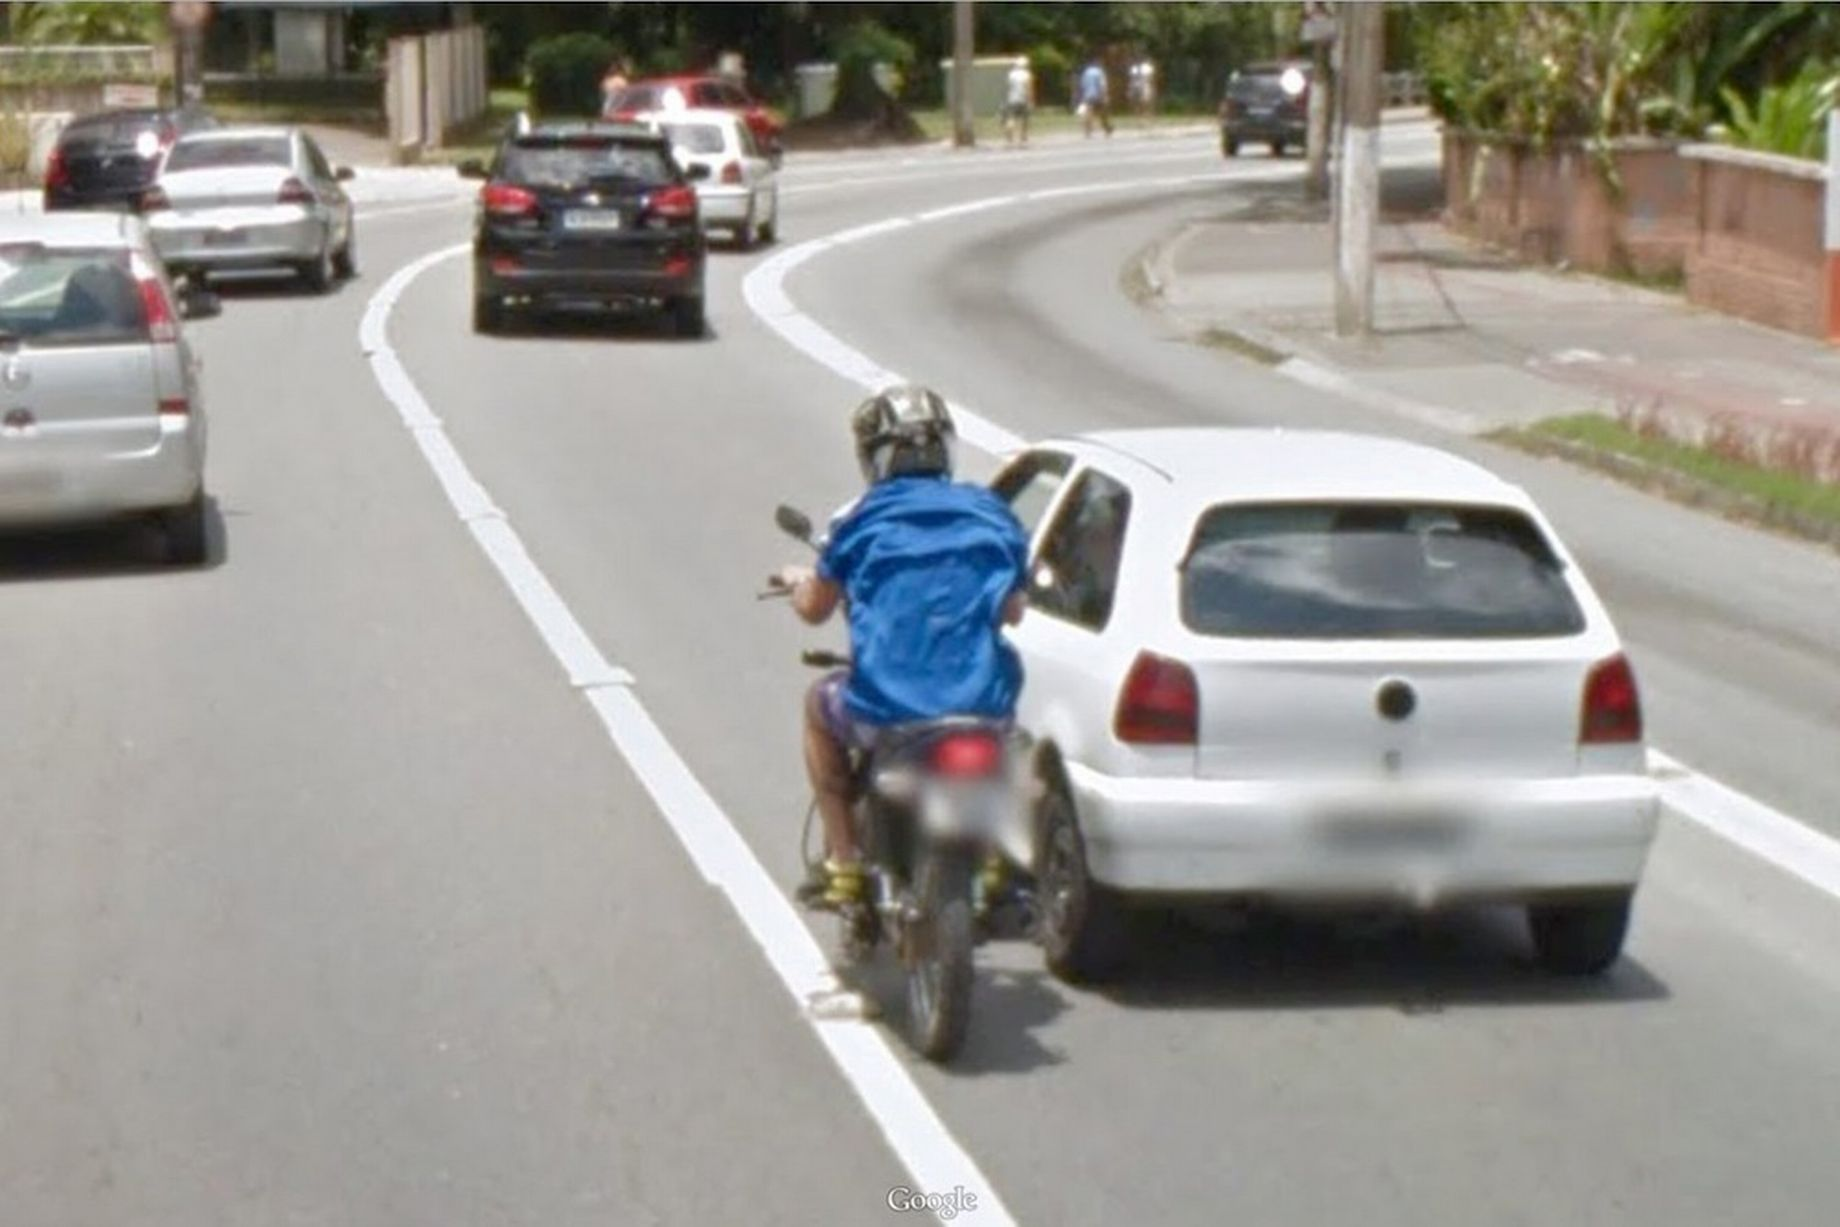 This motorcyclist had a lucky escape after crashing into a car with the whole episode captured on Google Street View.